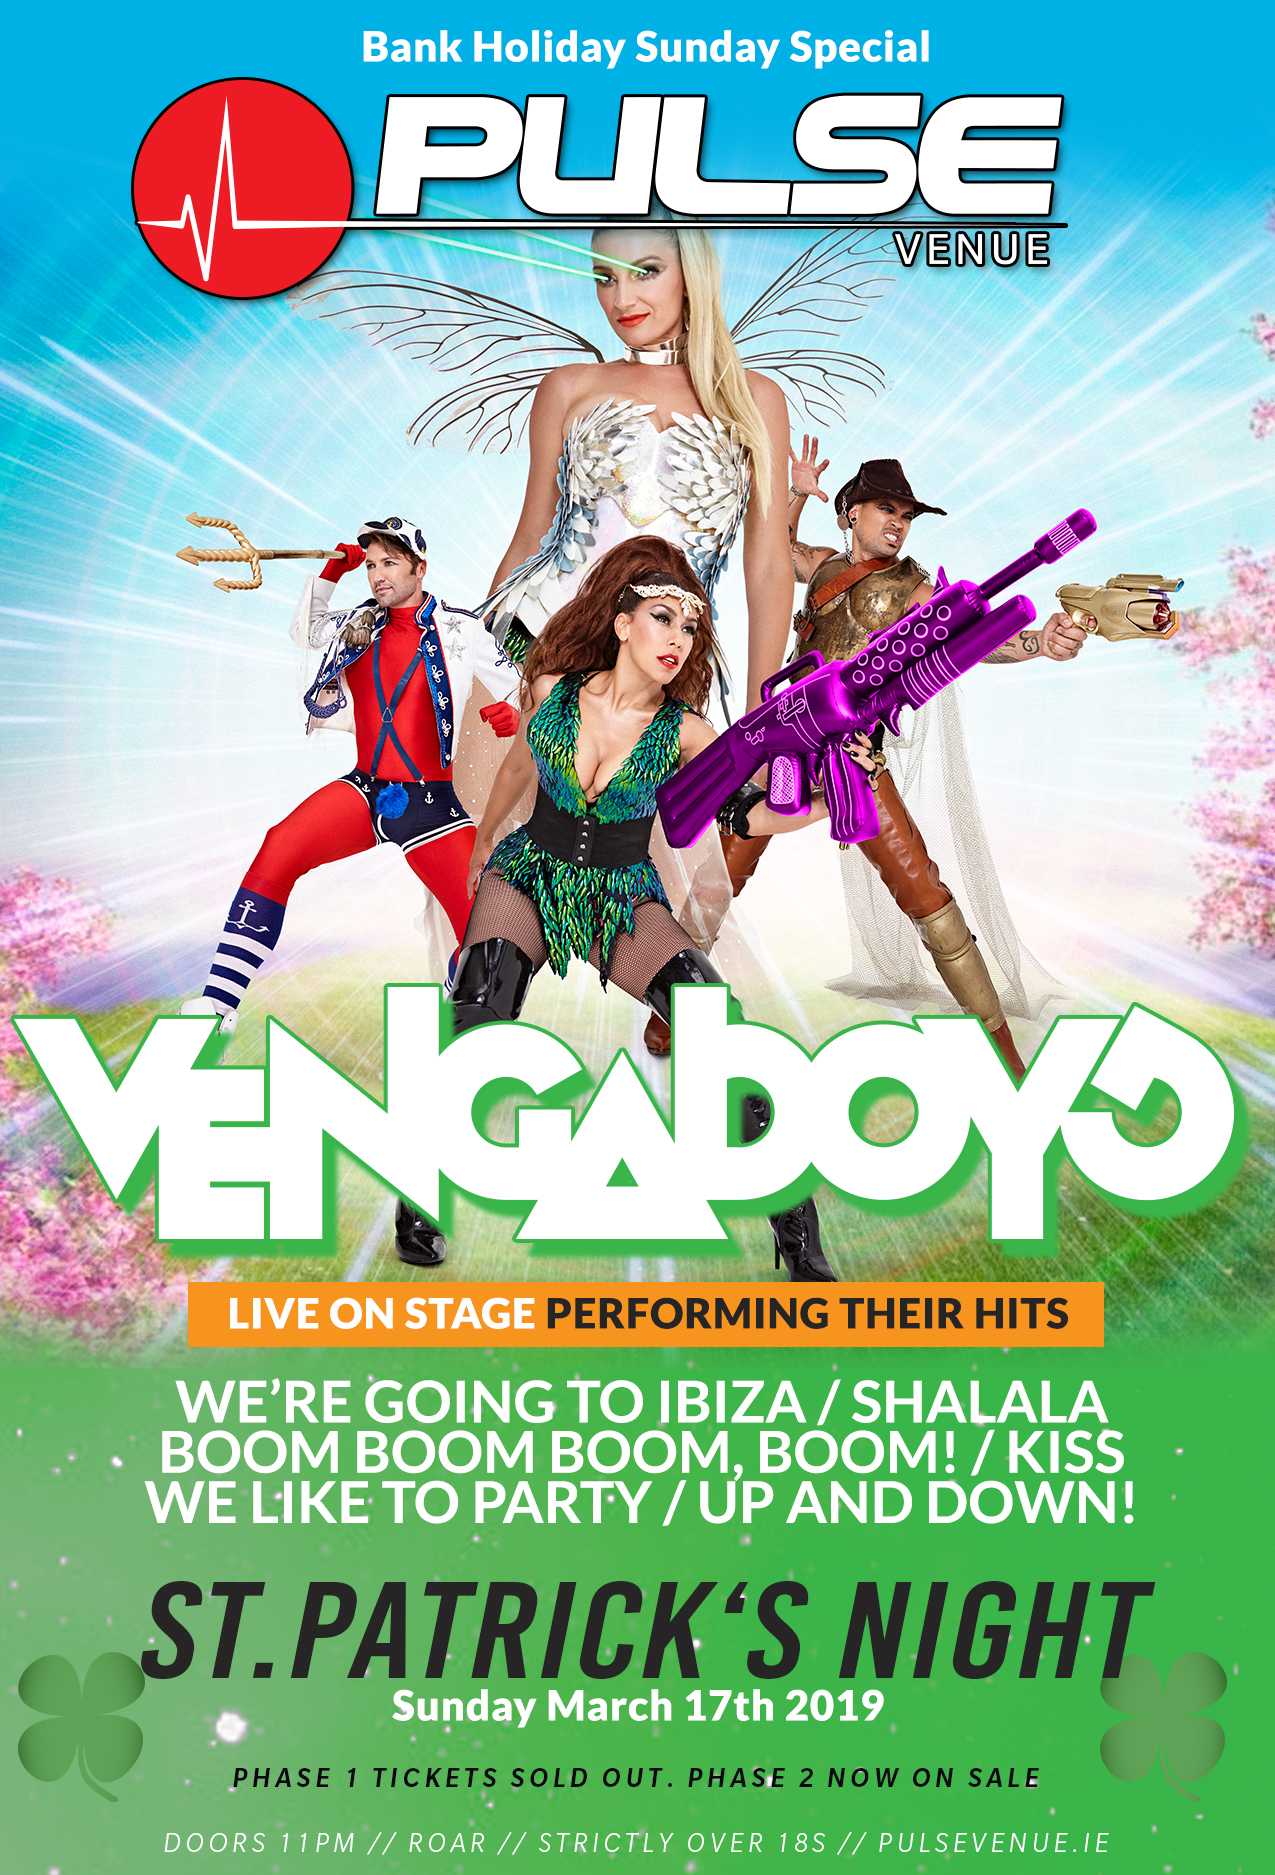 pulse-venue-venga-boys-live-on-stage-paddies-day-sun-march-17-2019-PHASE-2.jpg